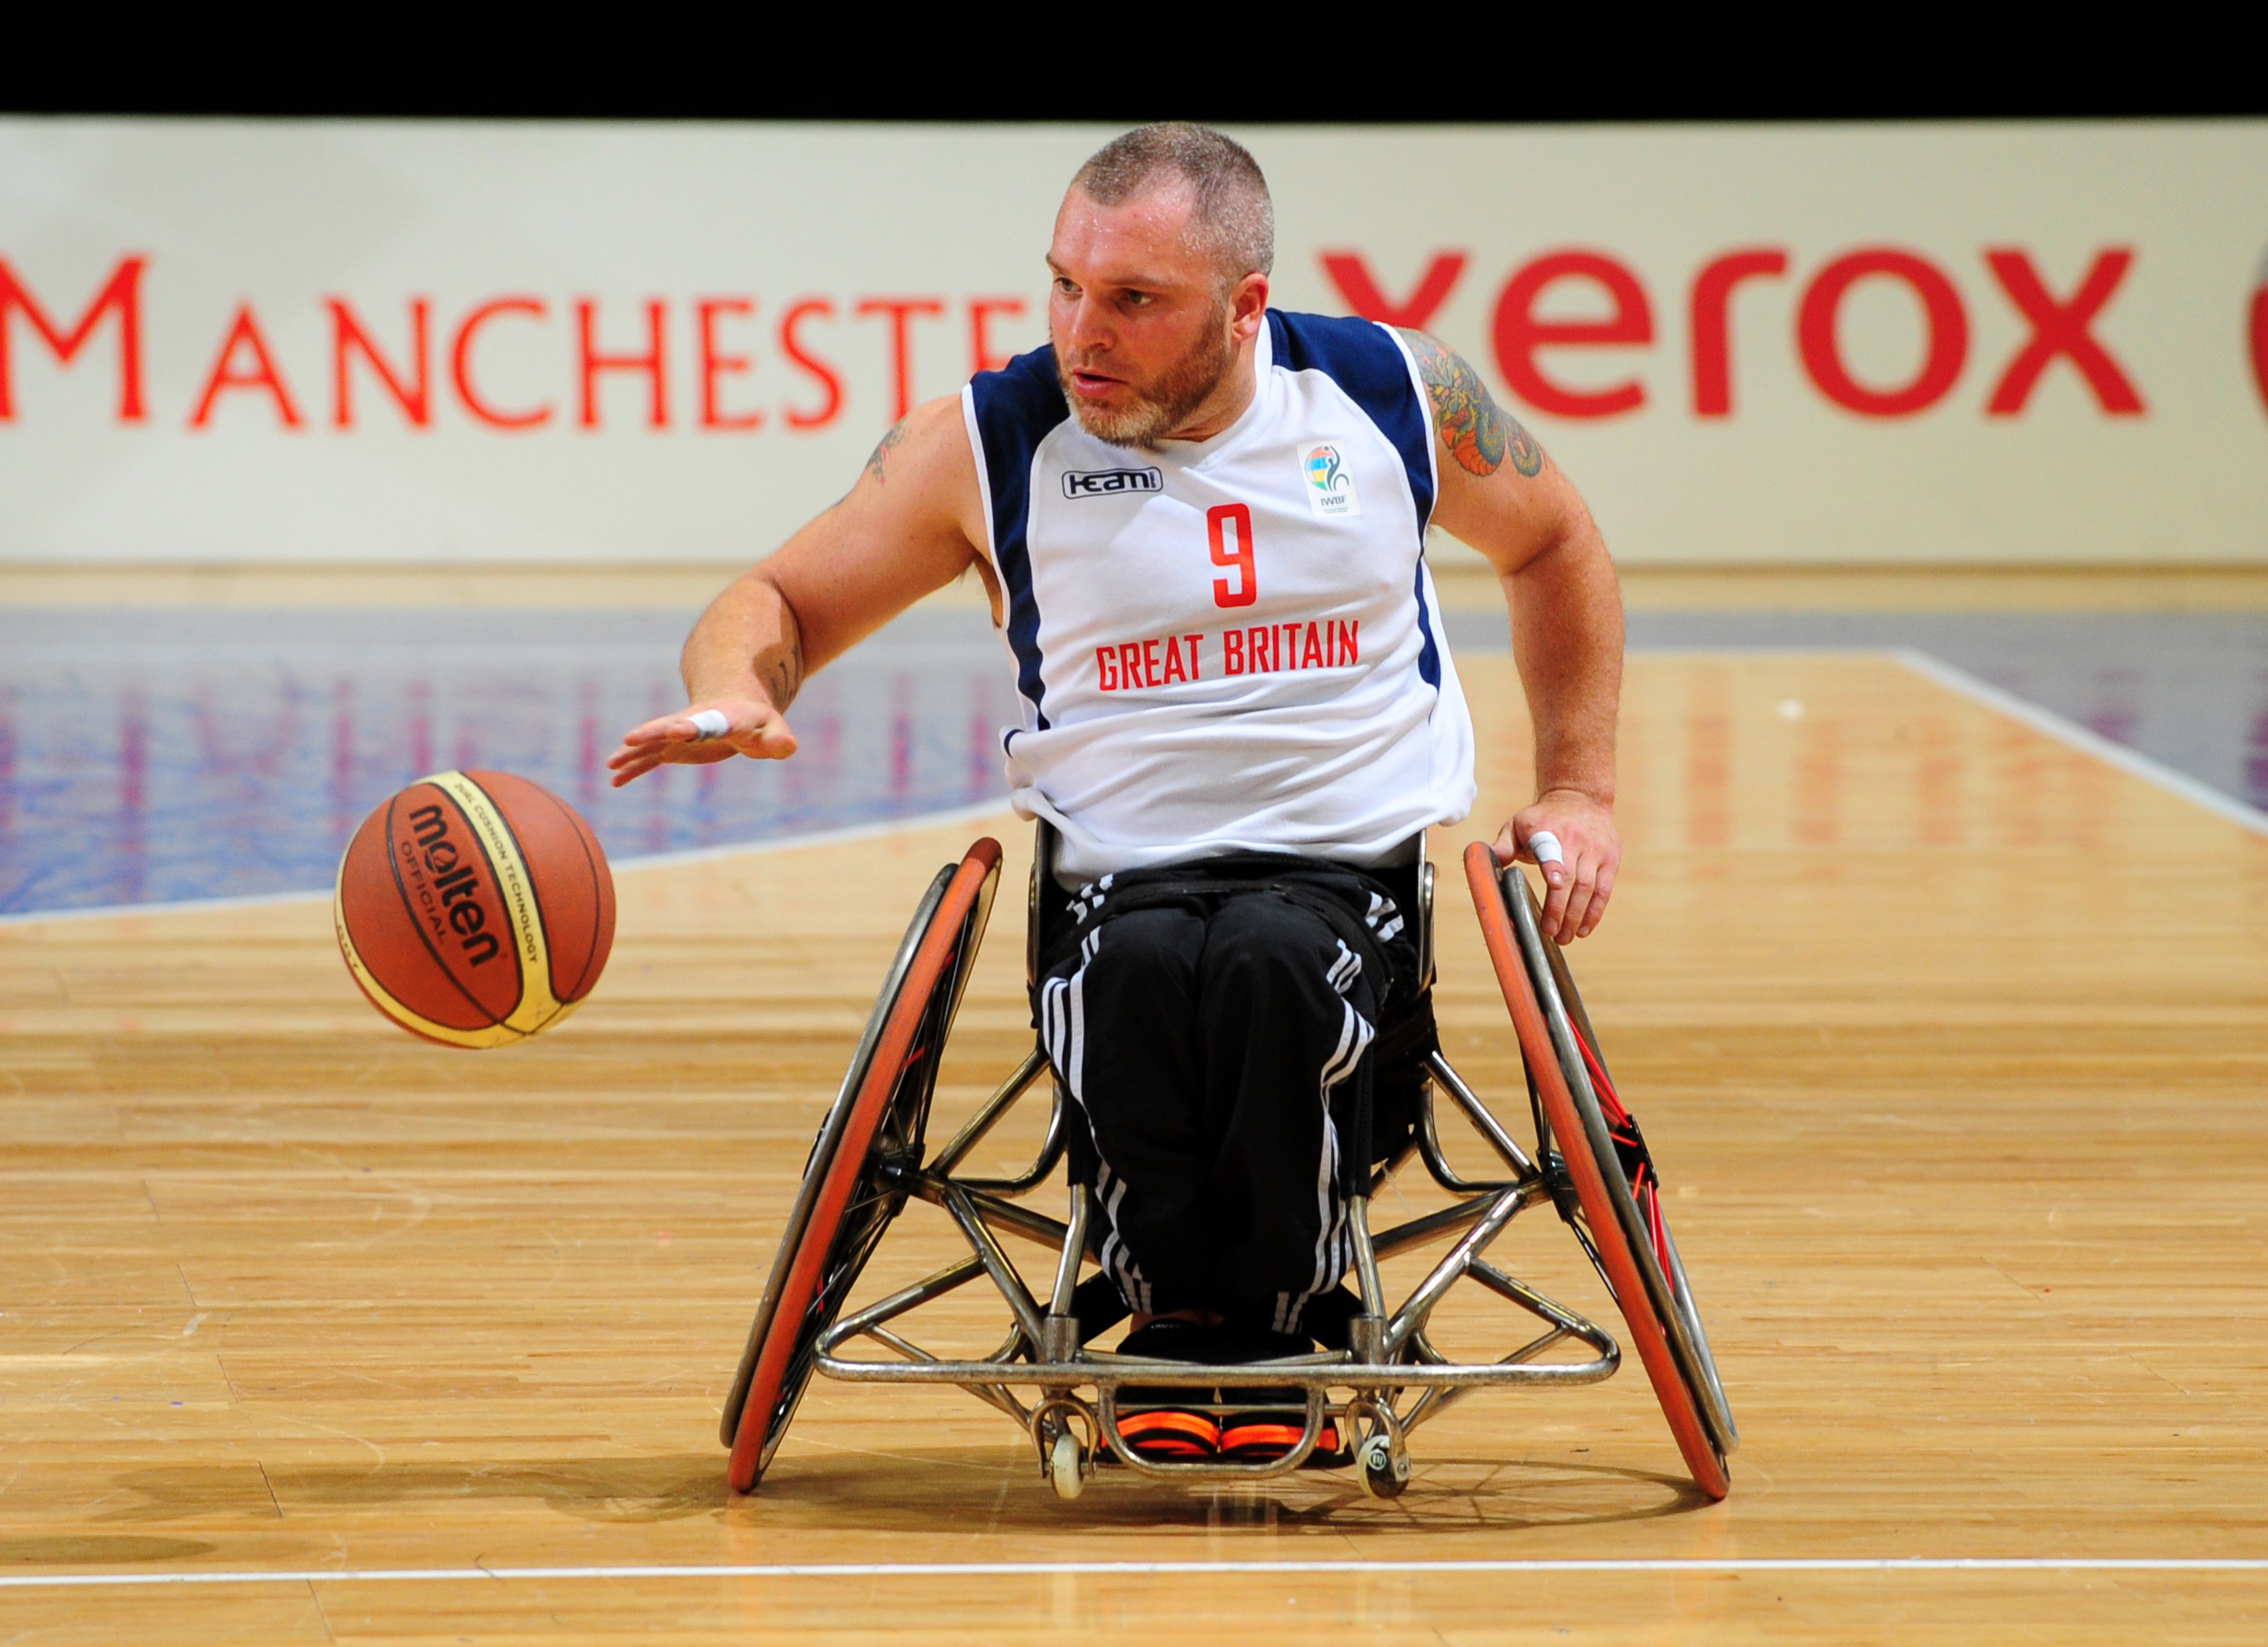 London 2012 wheelchair basketball star Jon Pollock: 'I've been tossed on the scrap heap'